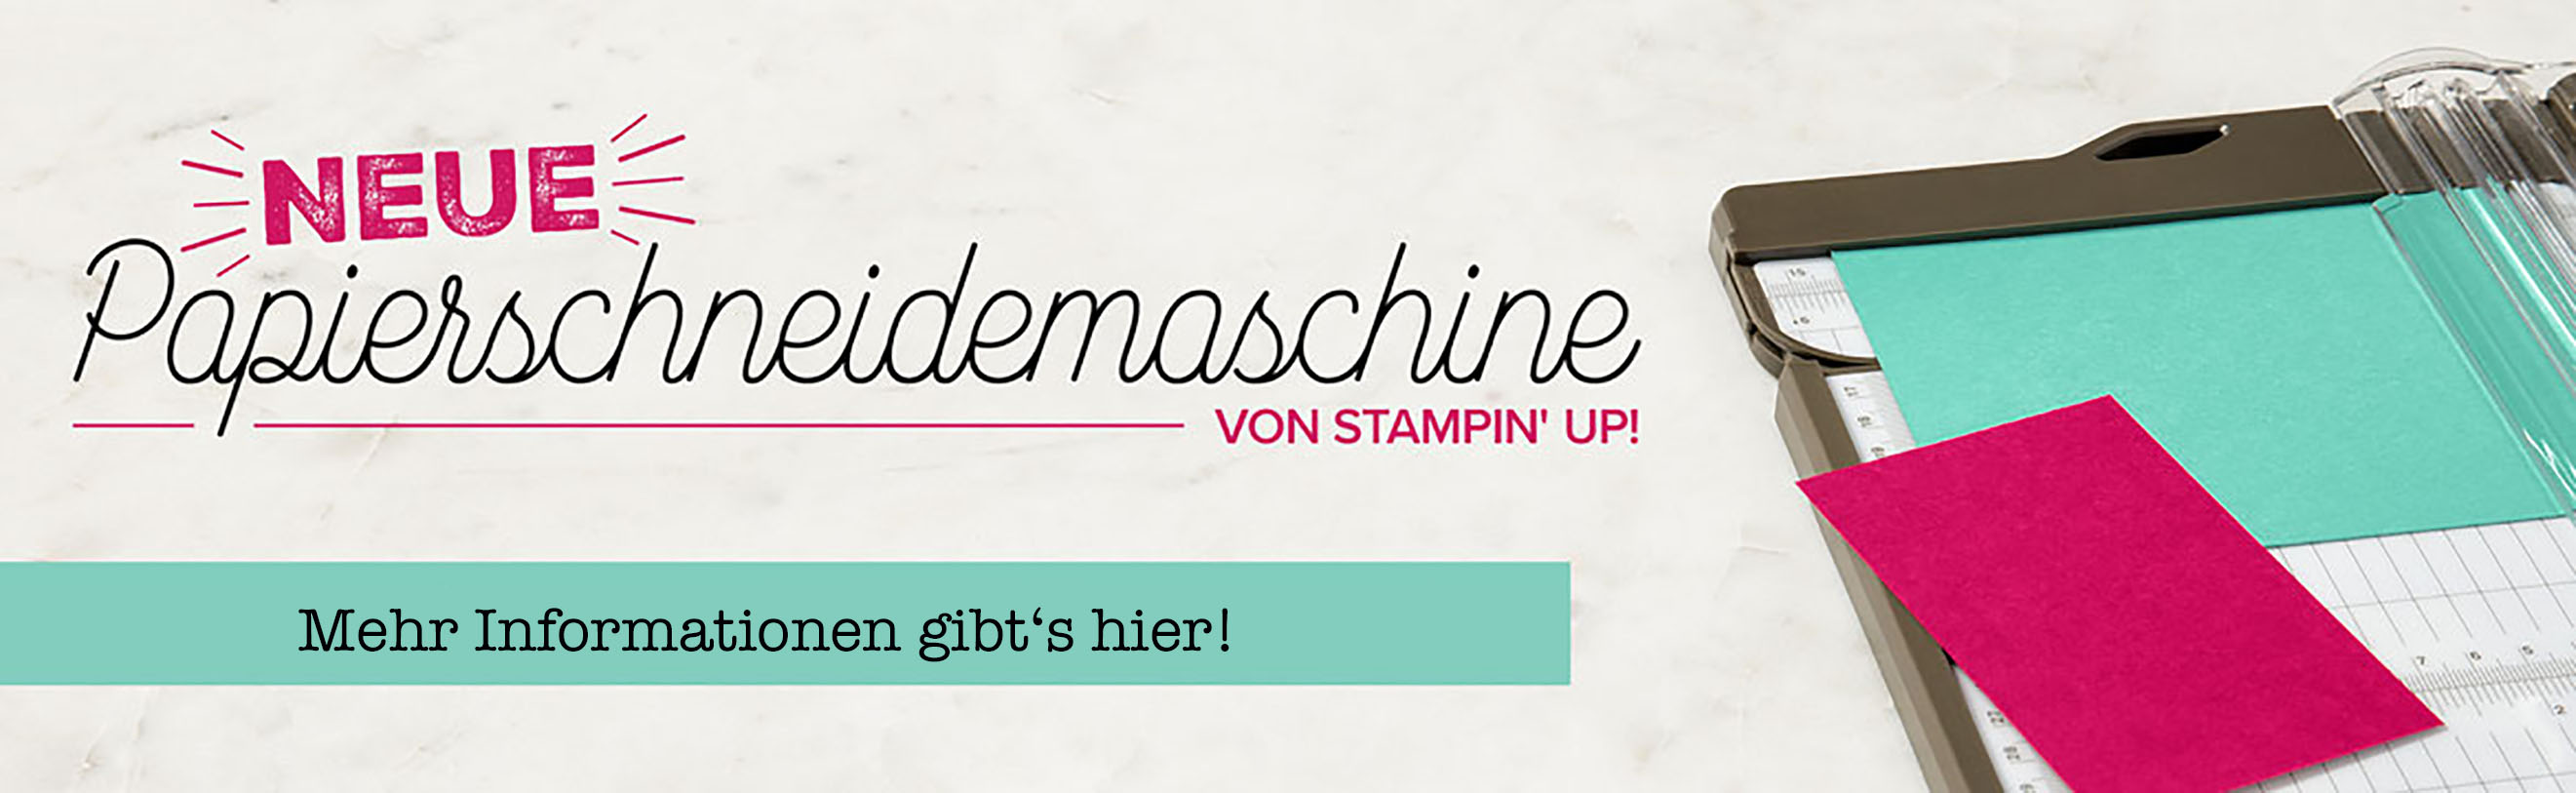 Stampin' Up! Papierschneidemaschine